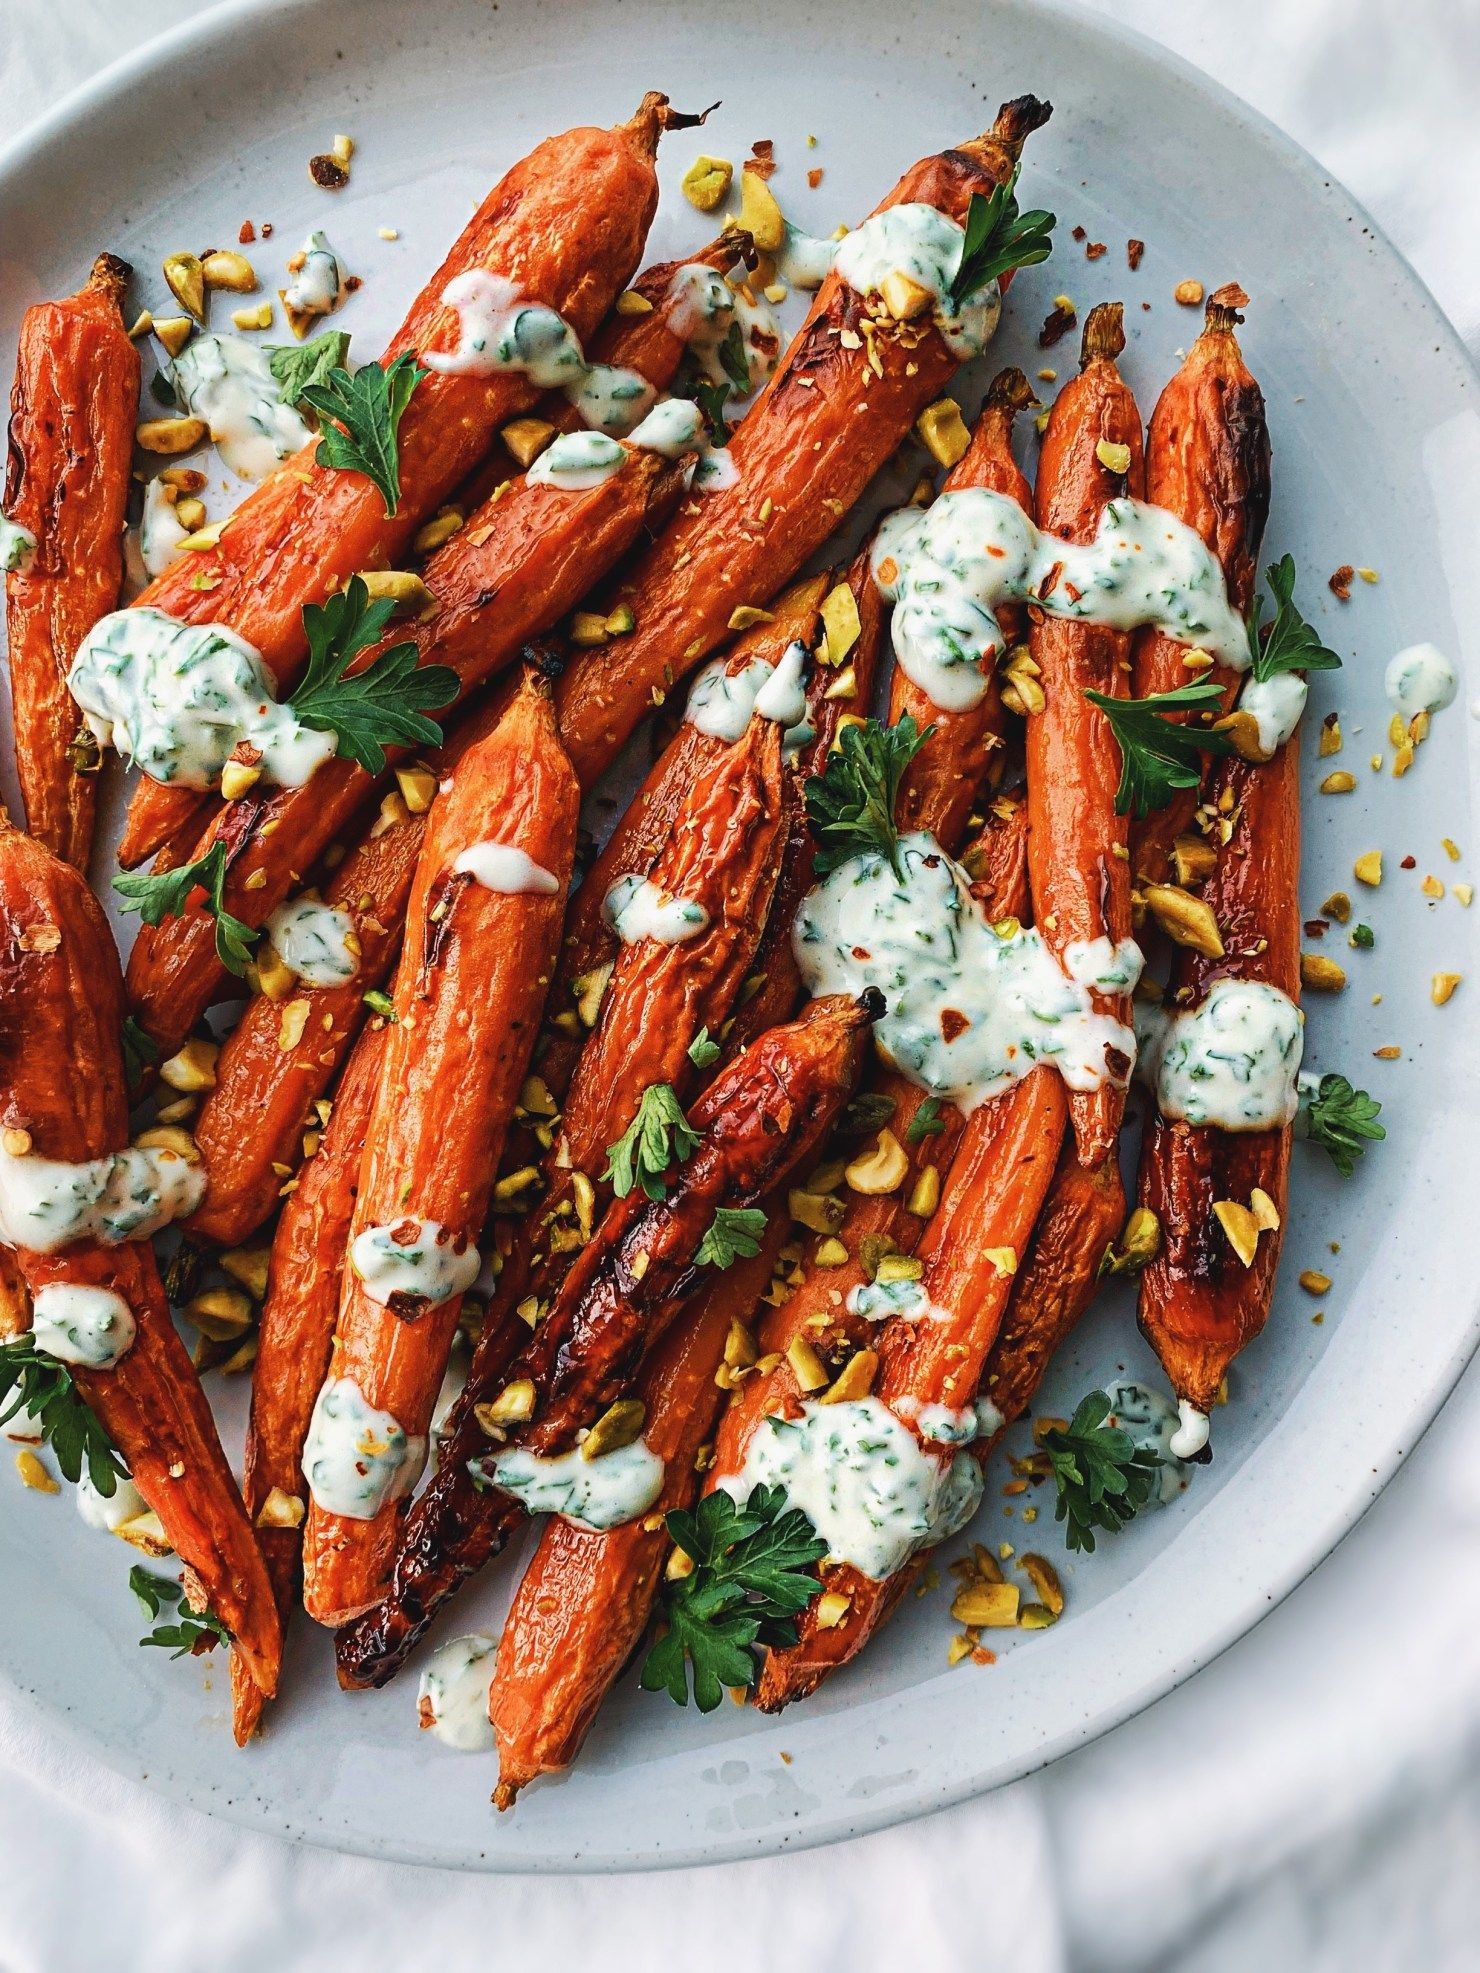 Spicy Honey Roasted Carrots With Herby Yogurt Sauce By Walderwellness Quick Easy Recipe The Feedfeed